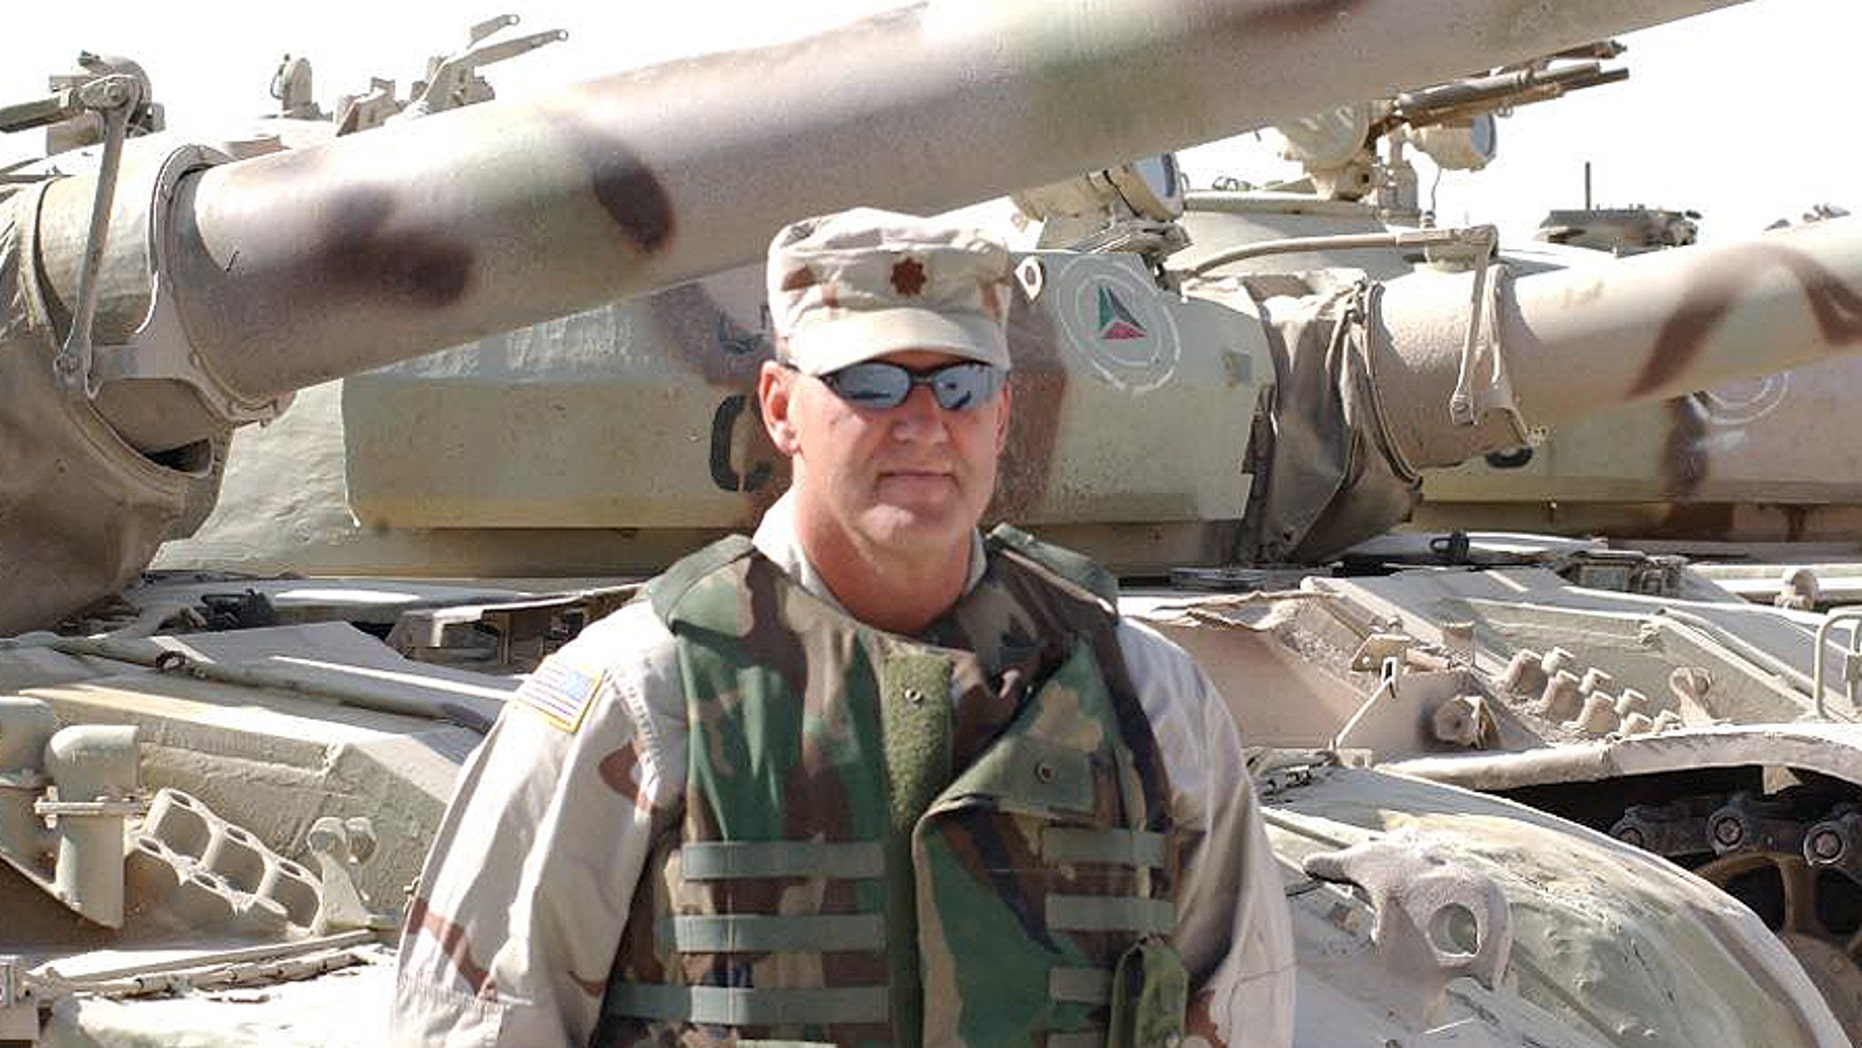 Michael Heston passed away on Thursday. He had Stage IV pancreatic cancer. His family believes it was his exposure to burn pits while he served in Afghanistan that led to his terminal illness.